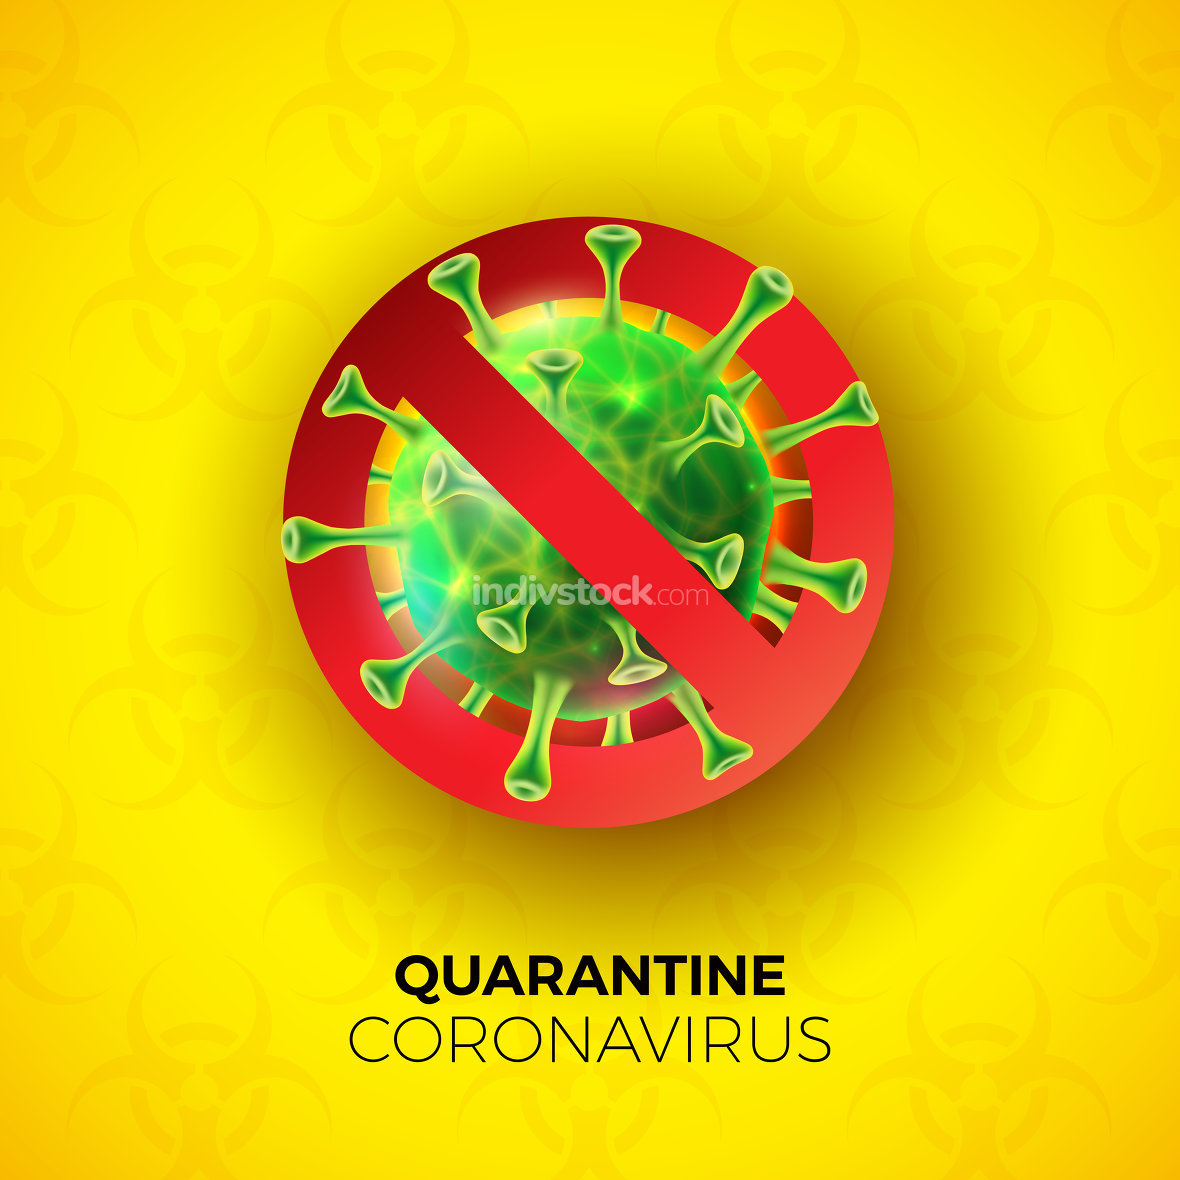 Quarantine Coronavirus Design with Covid-19 Virus Cell on Biological Danger Symbol Pattern Background. Vector 2019-ncov Corona Virus Outbreak Illustration. Stay Home, Stay Safe.